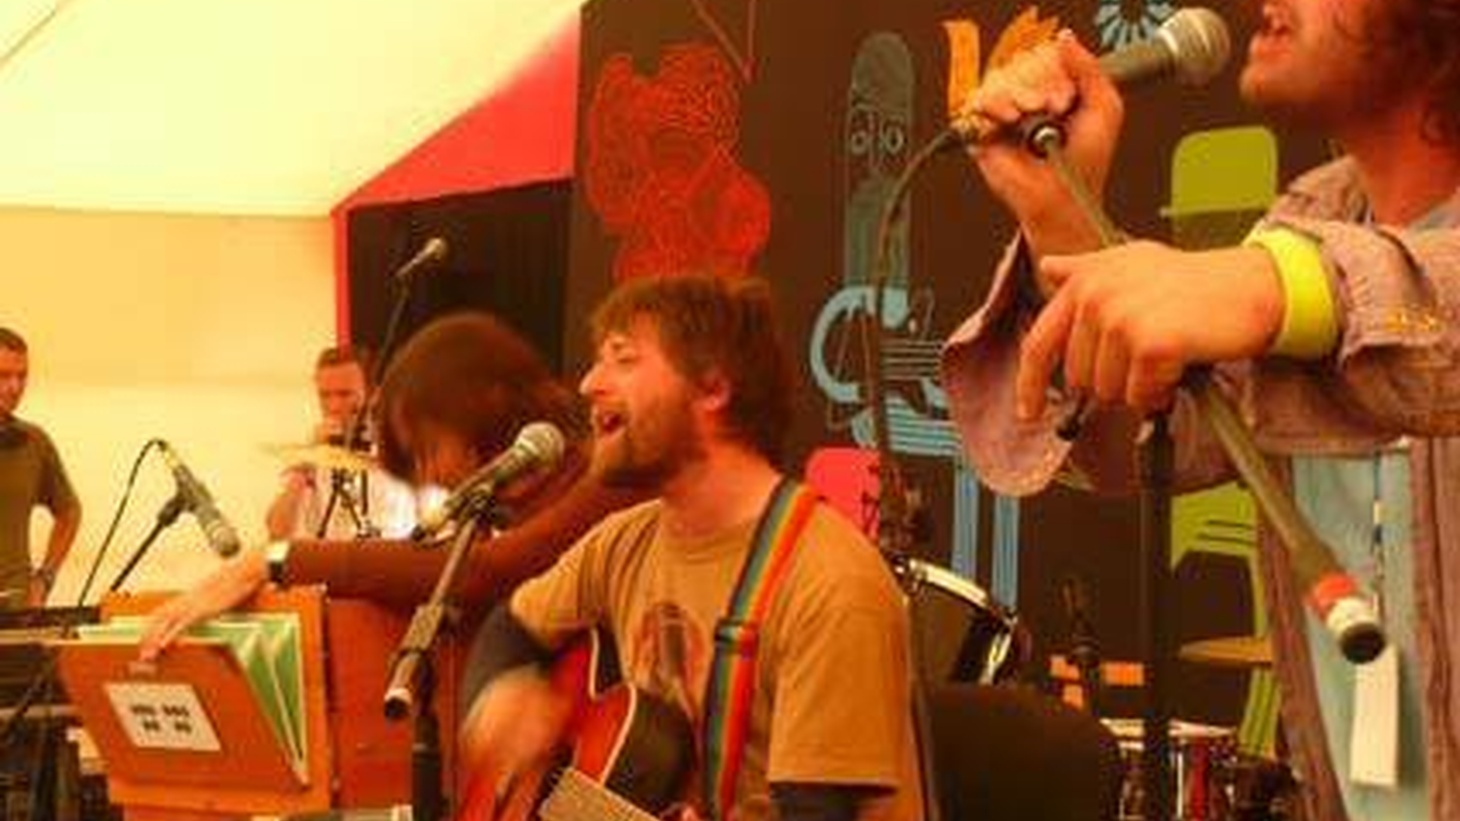 """King Creosote is a project from Scottish singer Kenny Anderson. While he may not be well known stateside, he's recorded 40 records at home on his own label, which Domino Records has asked him to re-record for a careful compilation of his best. Today's Top Tune is """"No Way She Exists,"""" from Thrawn."""